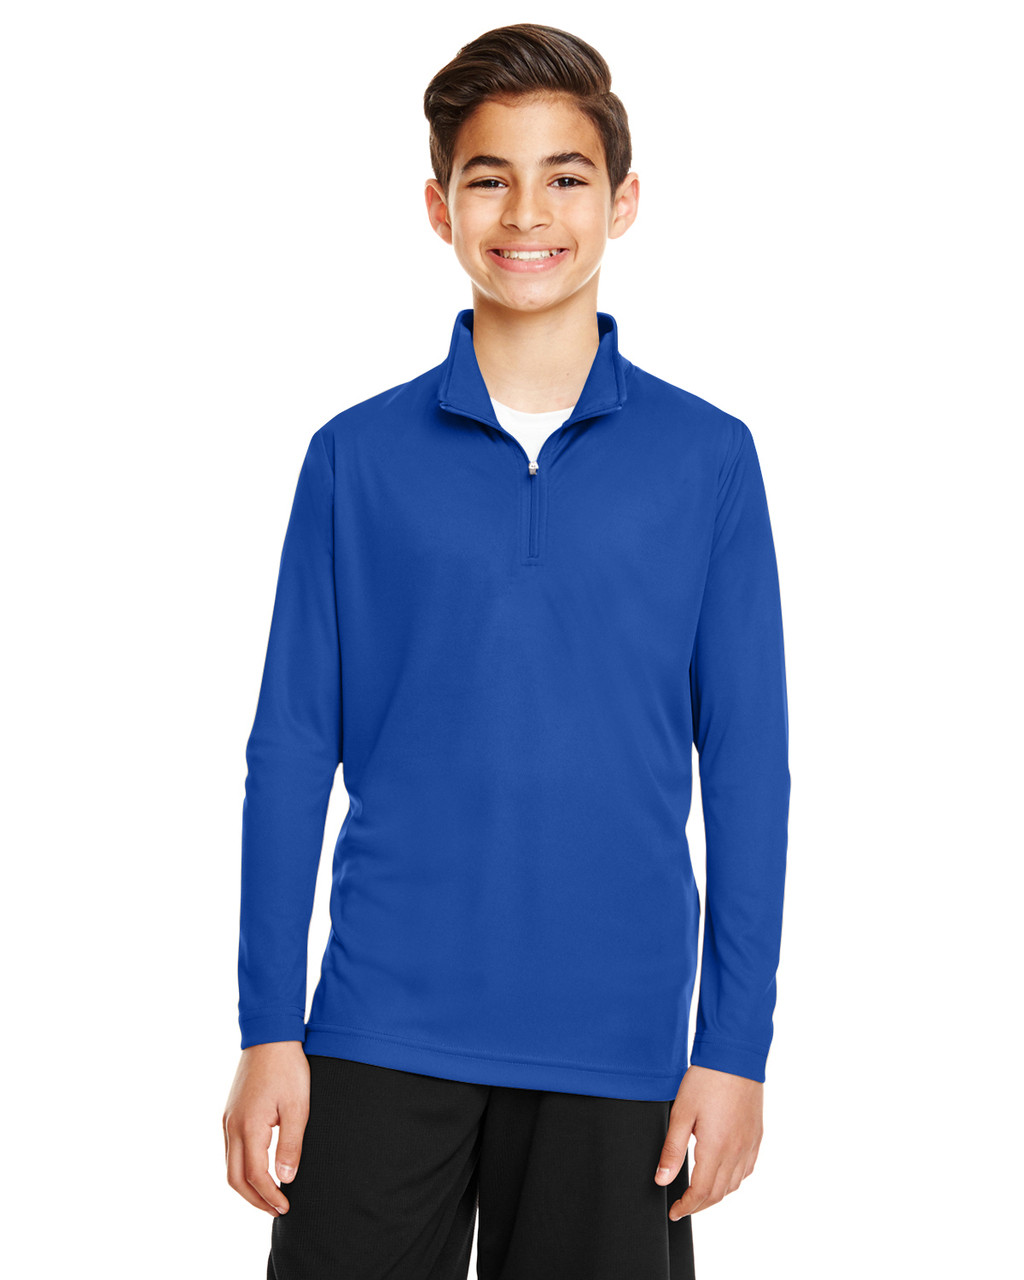 Sport Royal - TT31Y Team 365 Youth Zone Performance Quarter-Zip